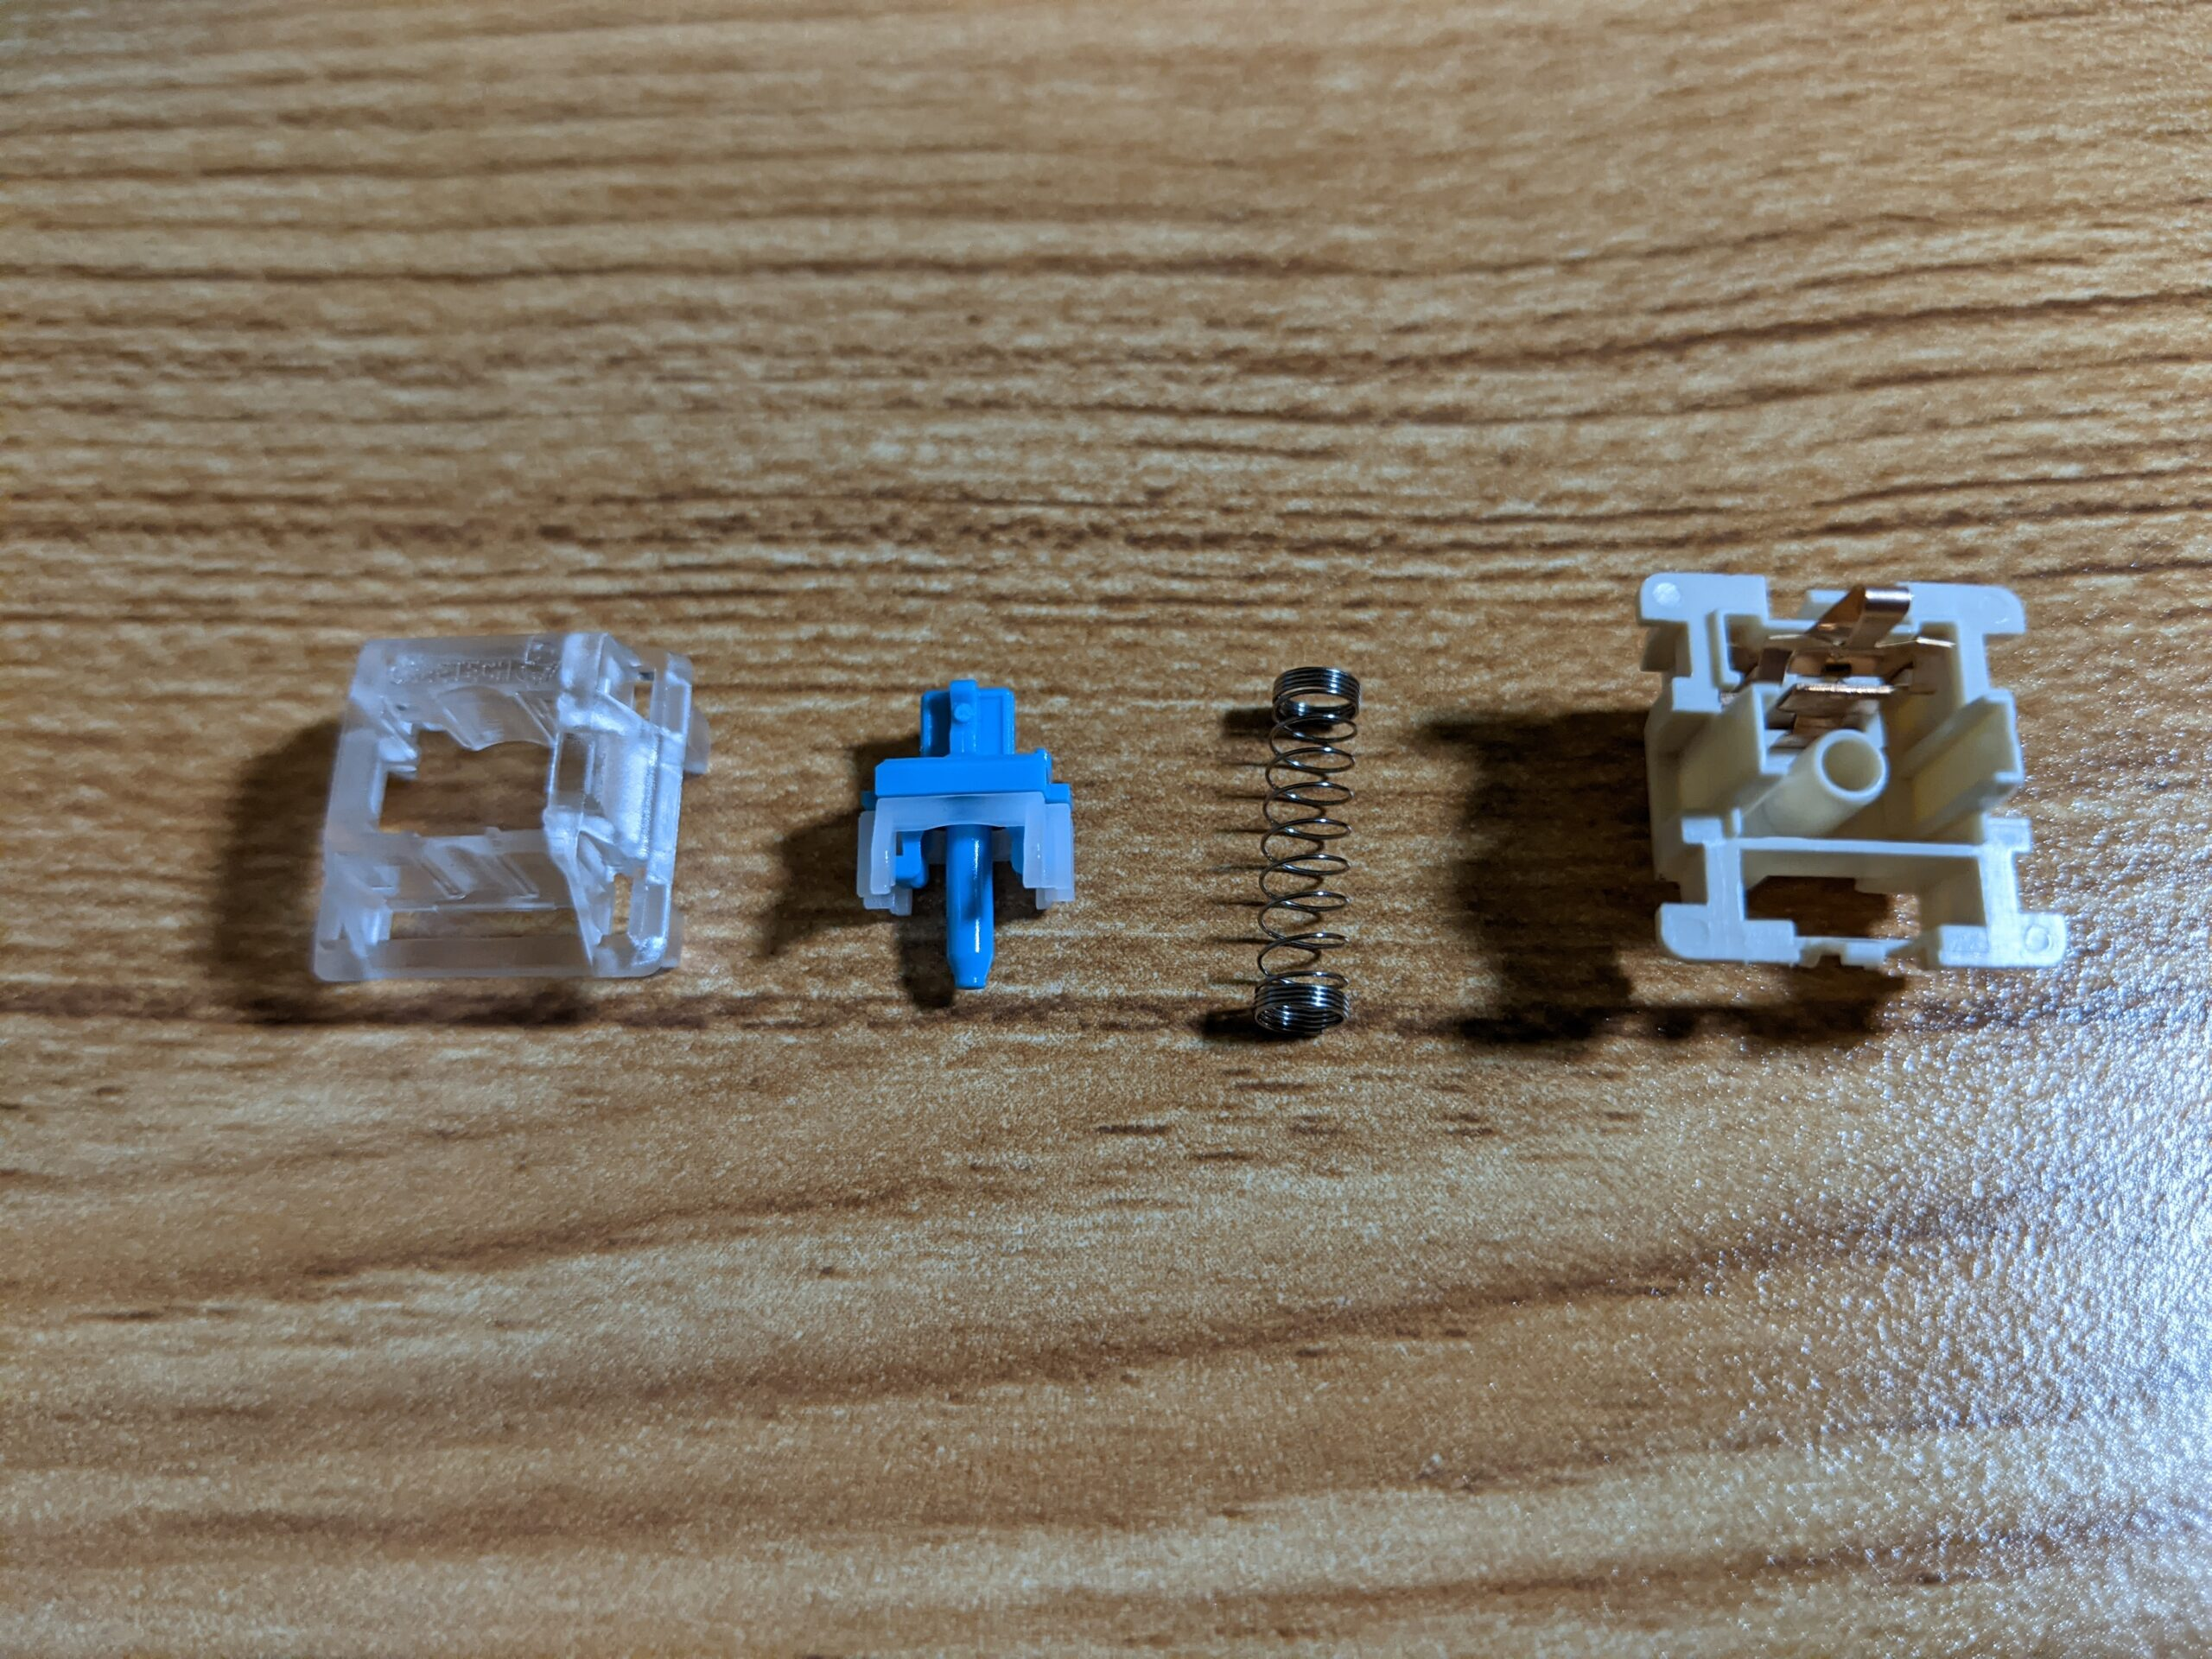 Greetech Blue switch disassembled